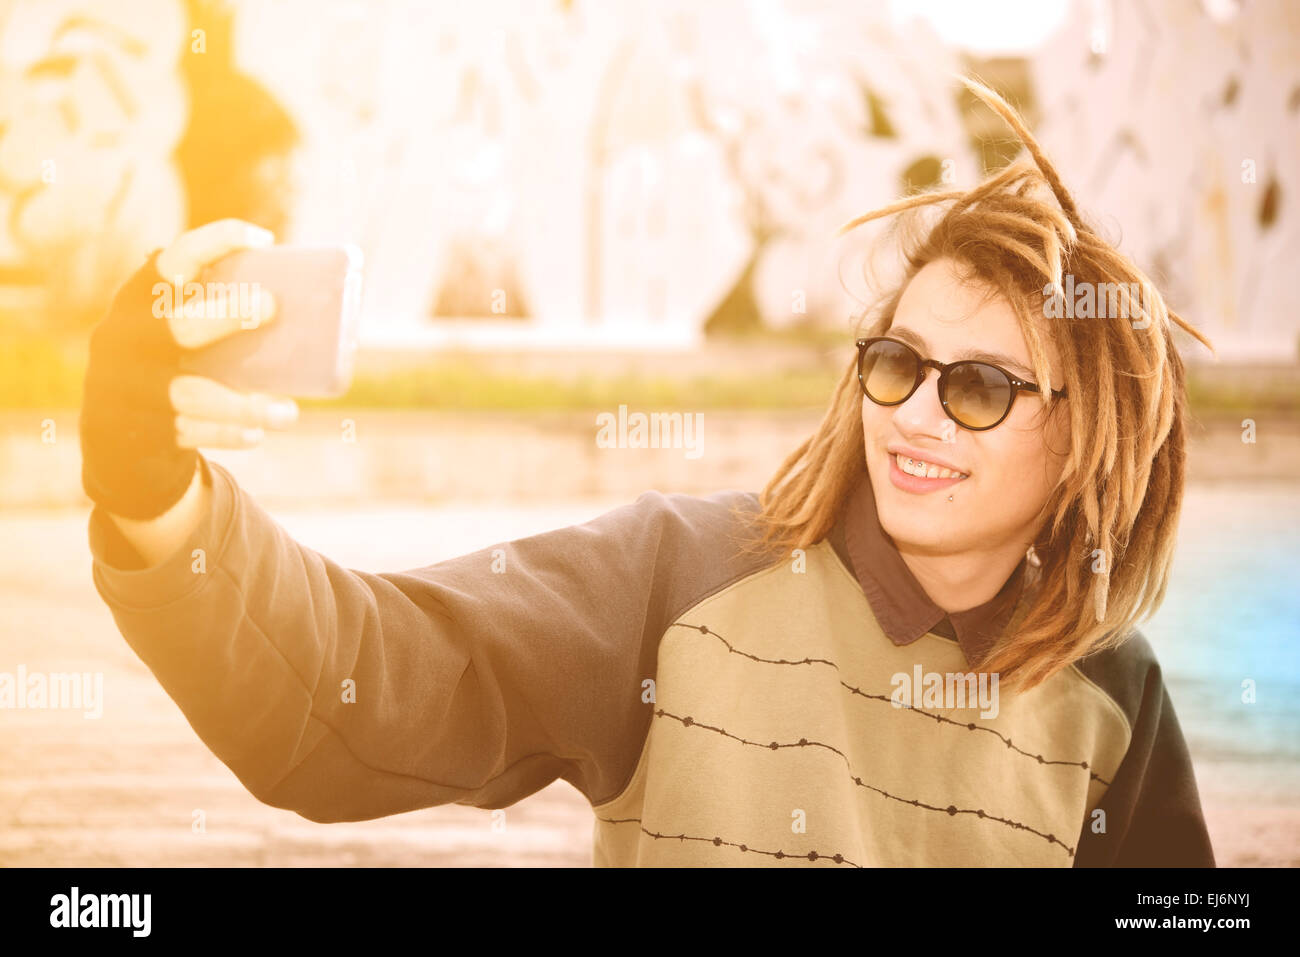 portrait of young guy outdoor with rasta hair smiling with smart phone in a lifestyle concept with a warm filter - Stock Image